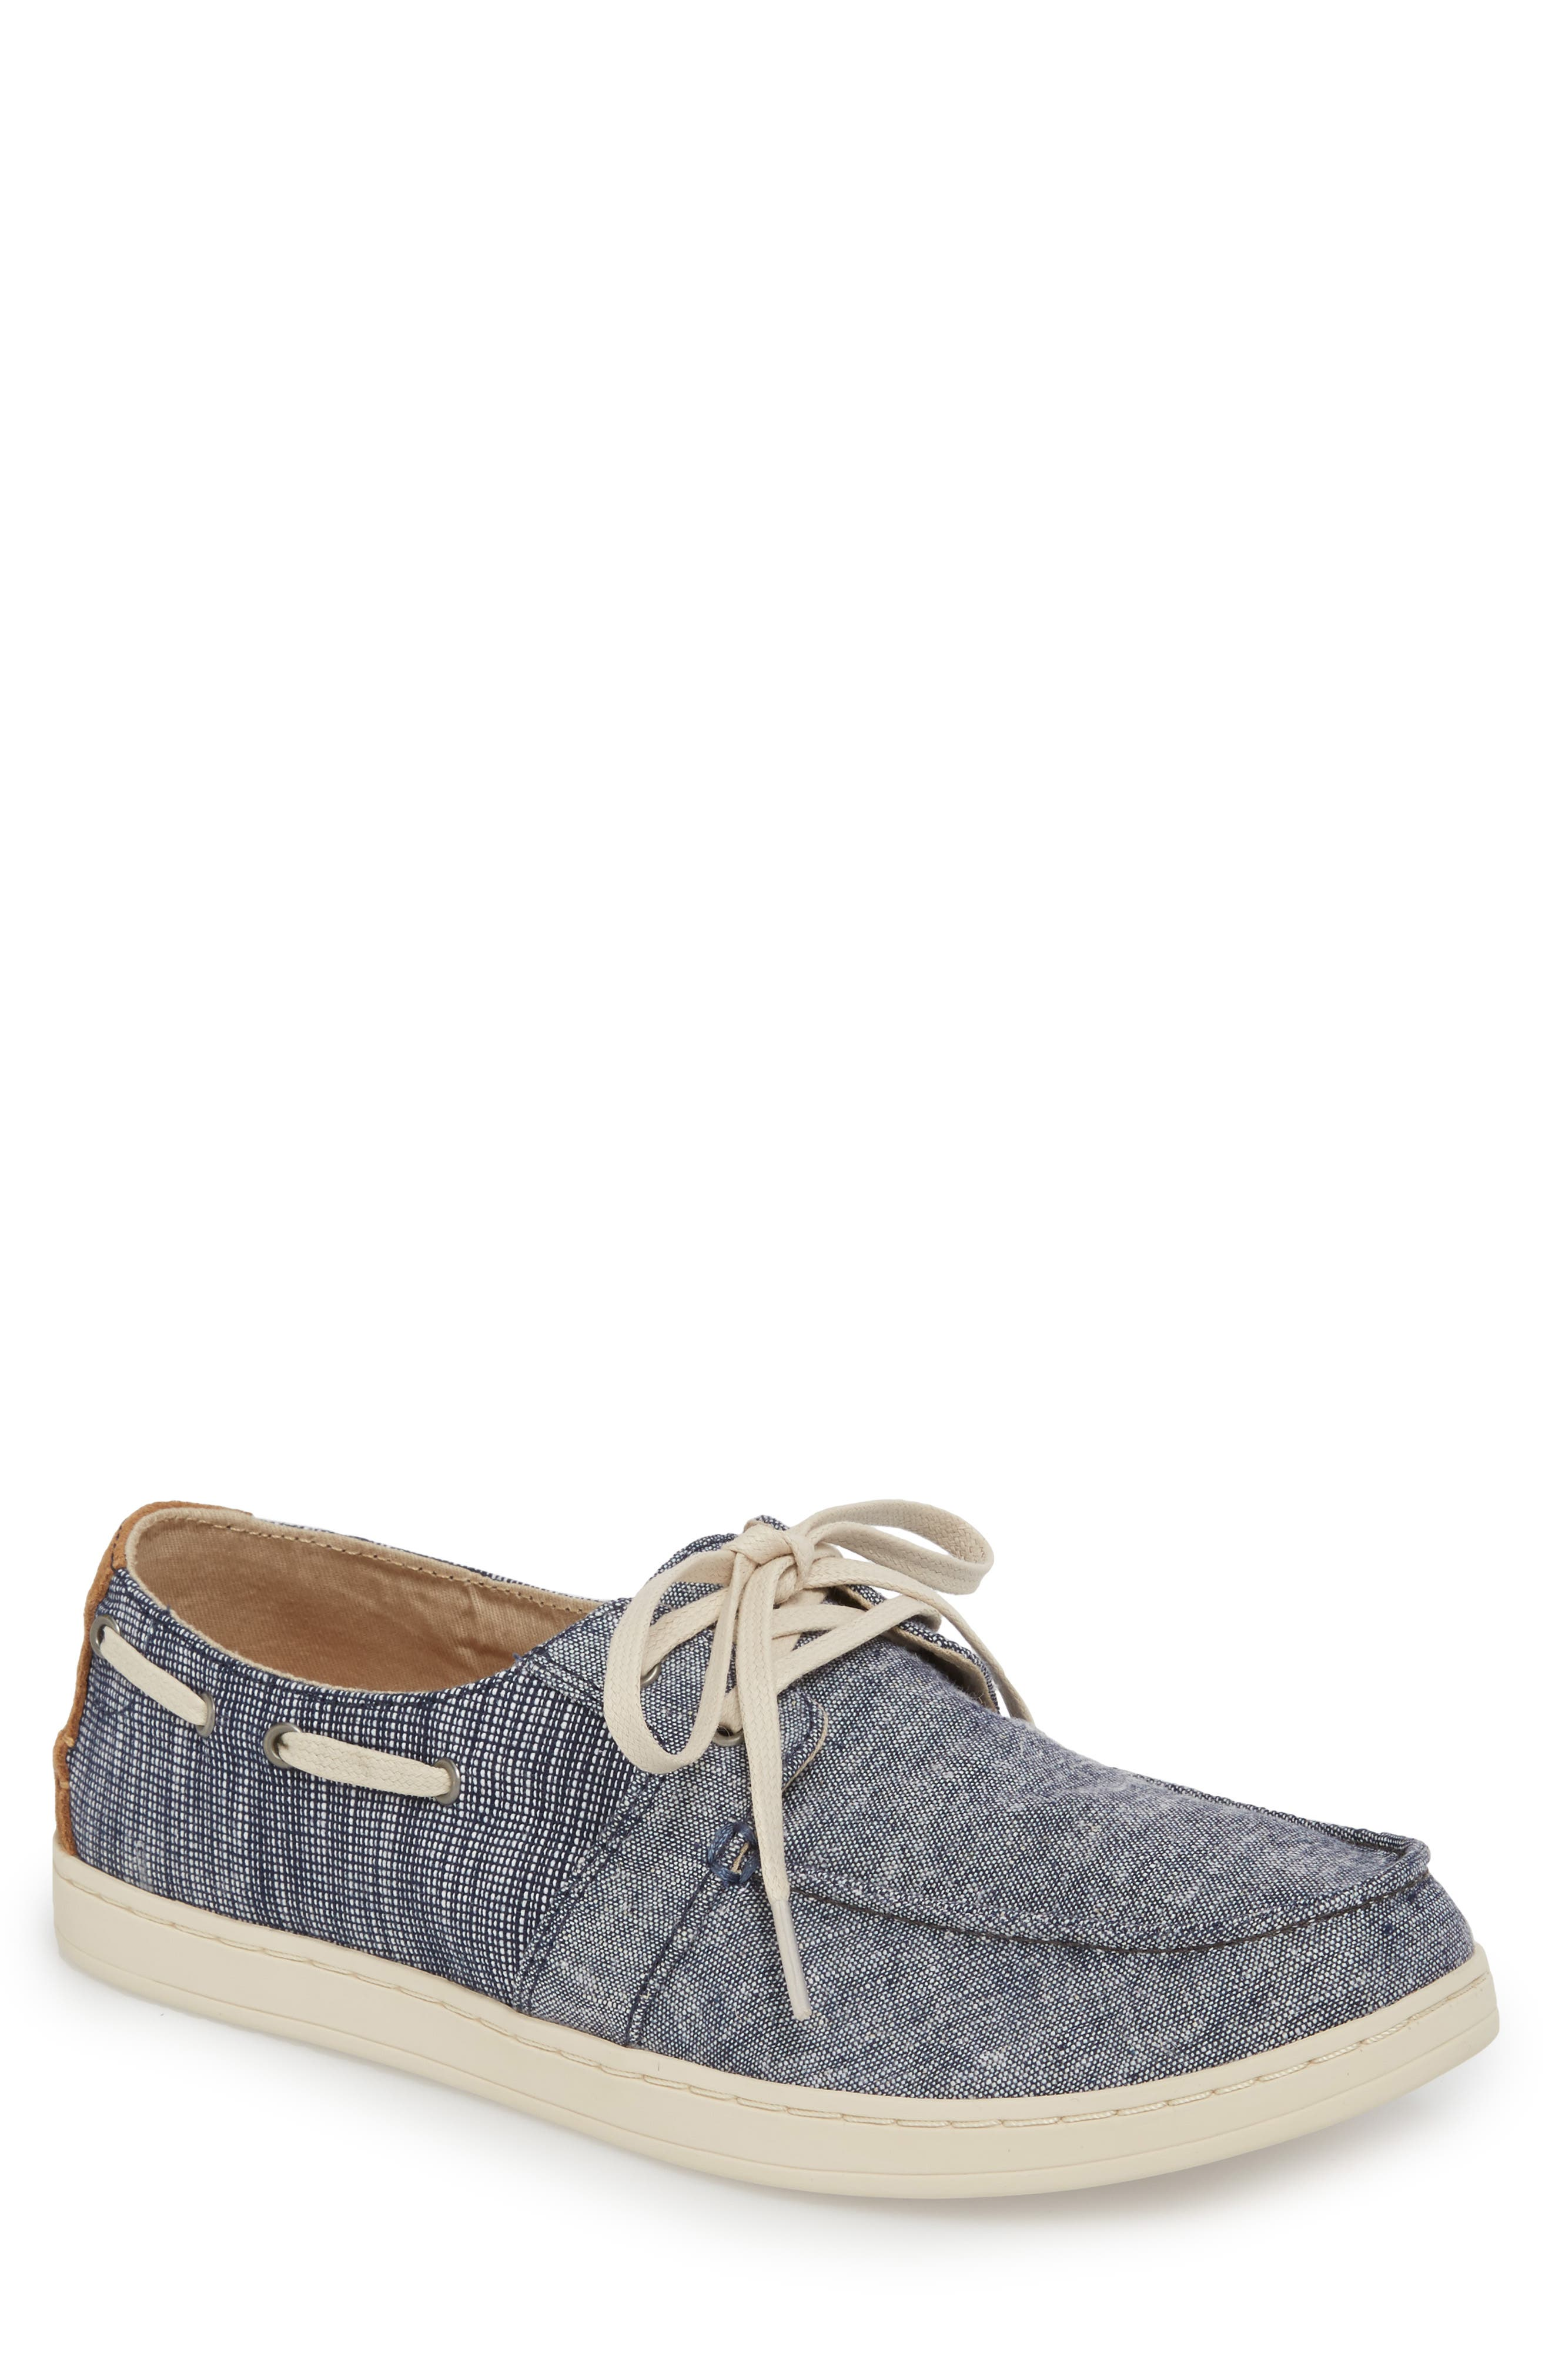 'Culver' Boat Shoe,                         Main,                         color, CANVAS EMBROIDERED WHALE